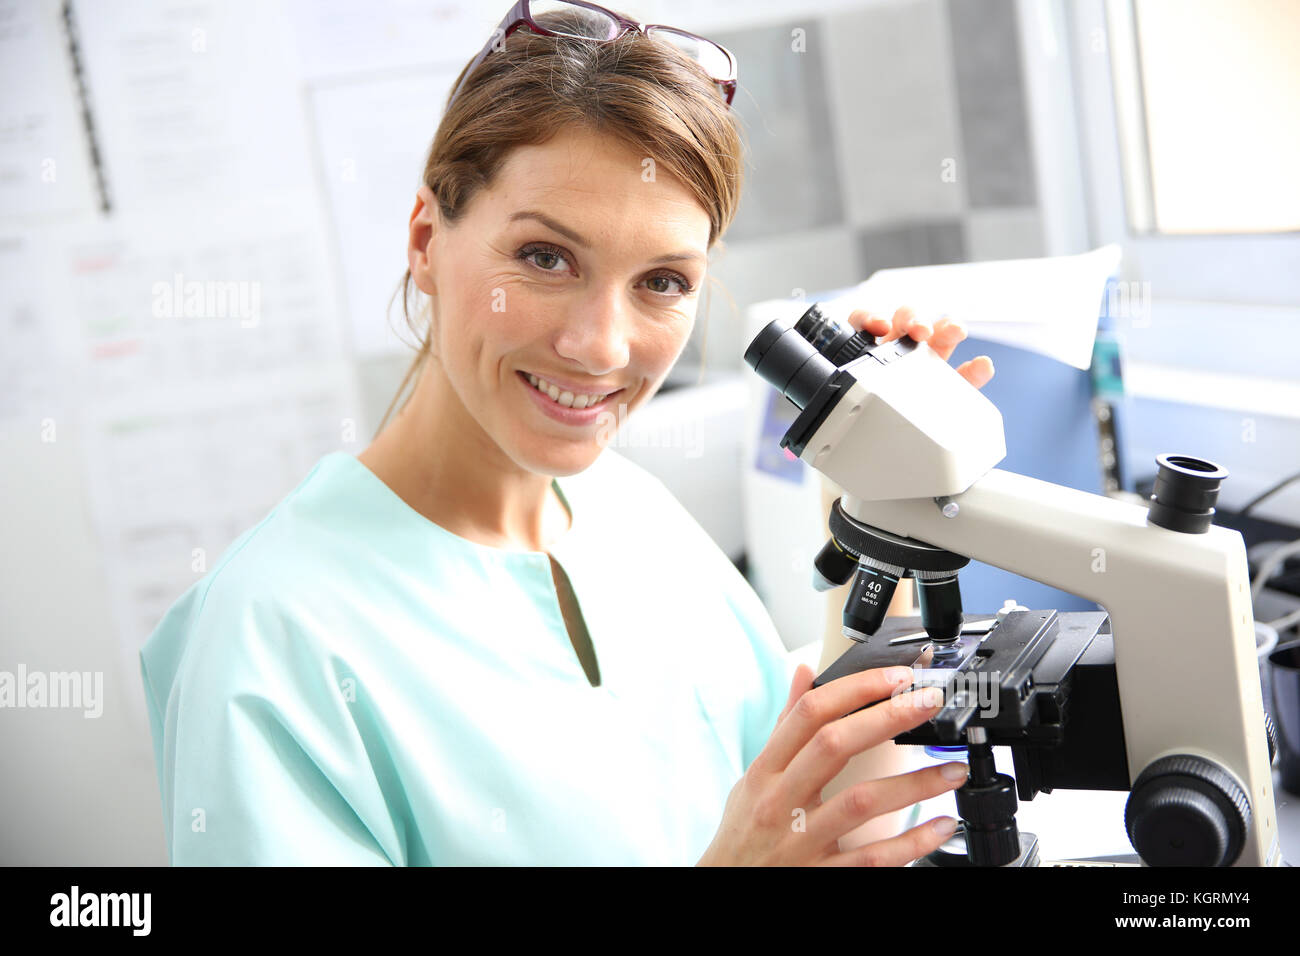 Doctor in laboratory looking through microscope - Stock Image